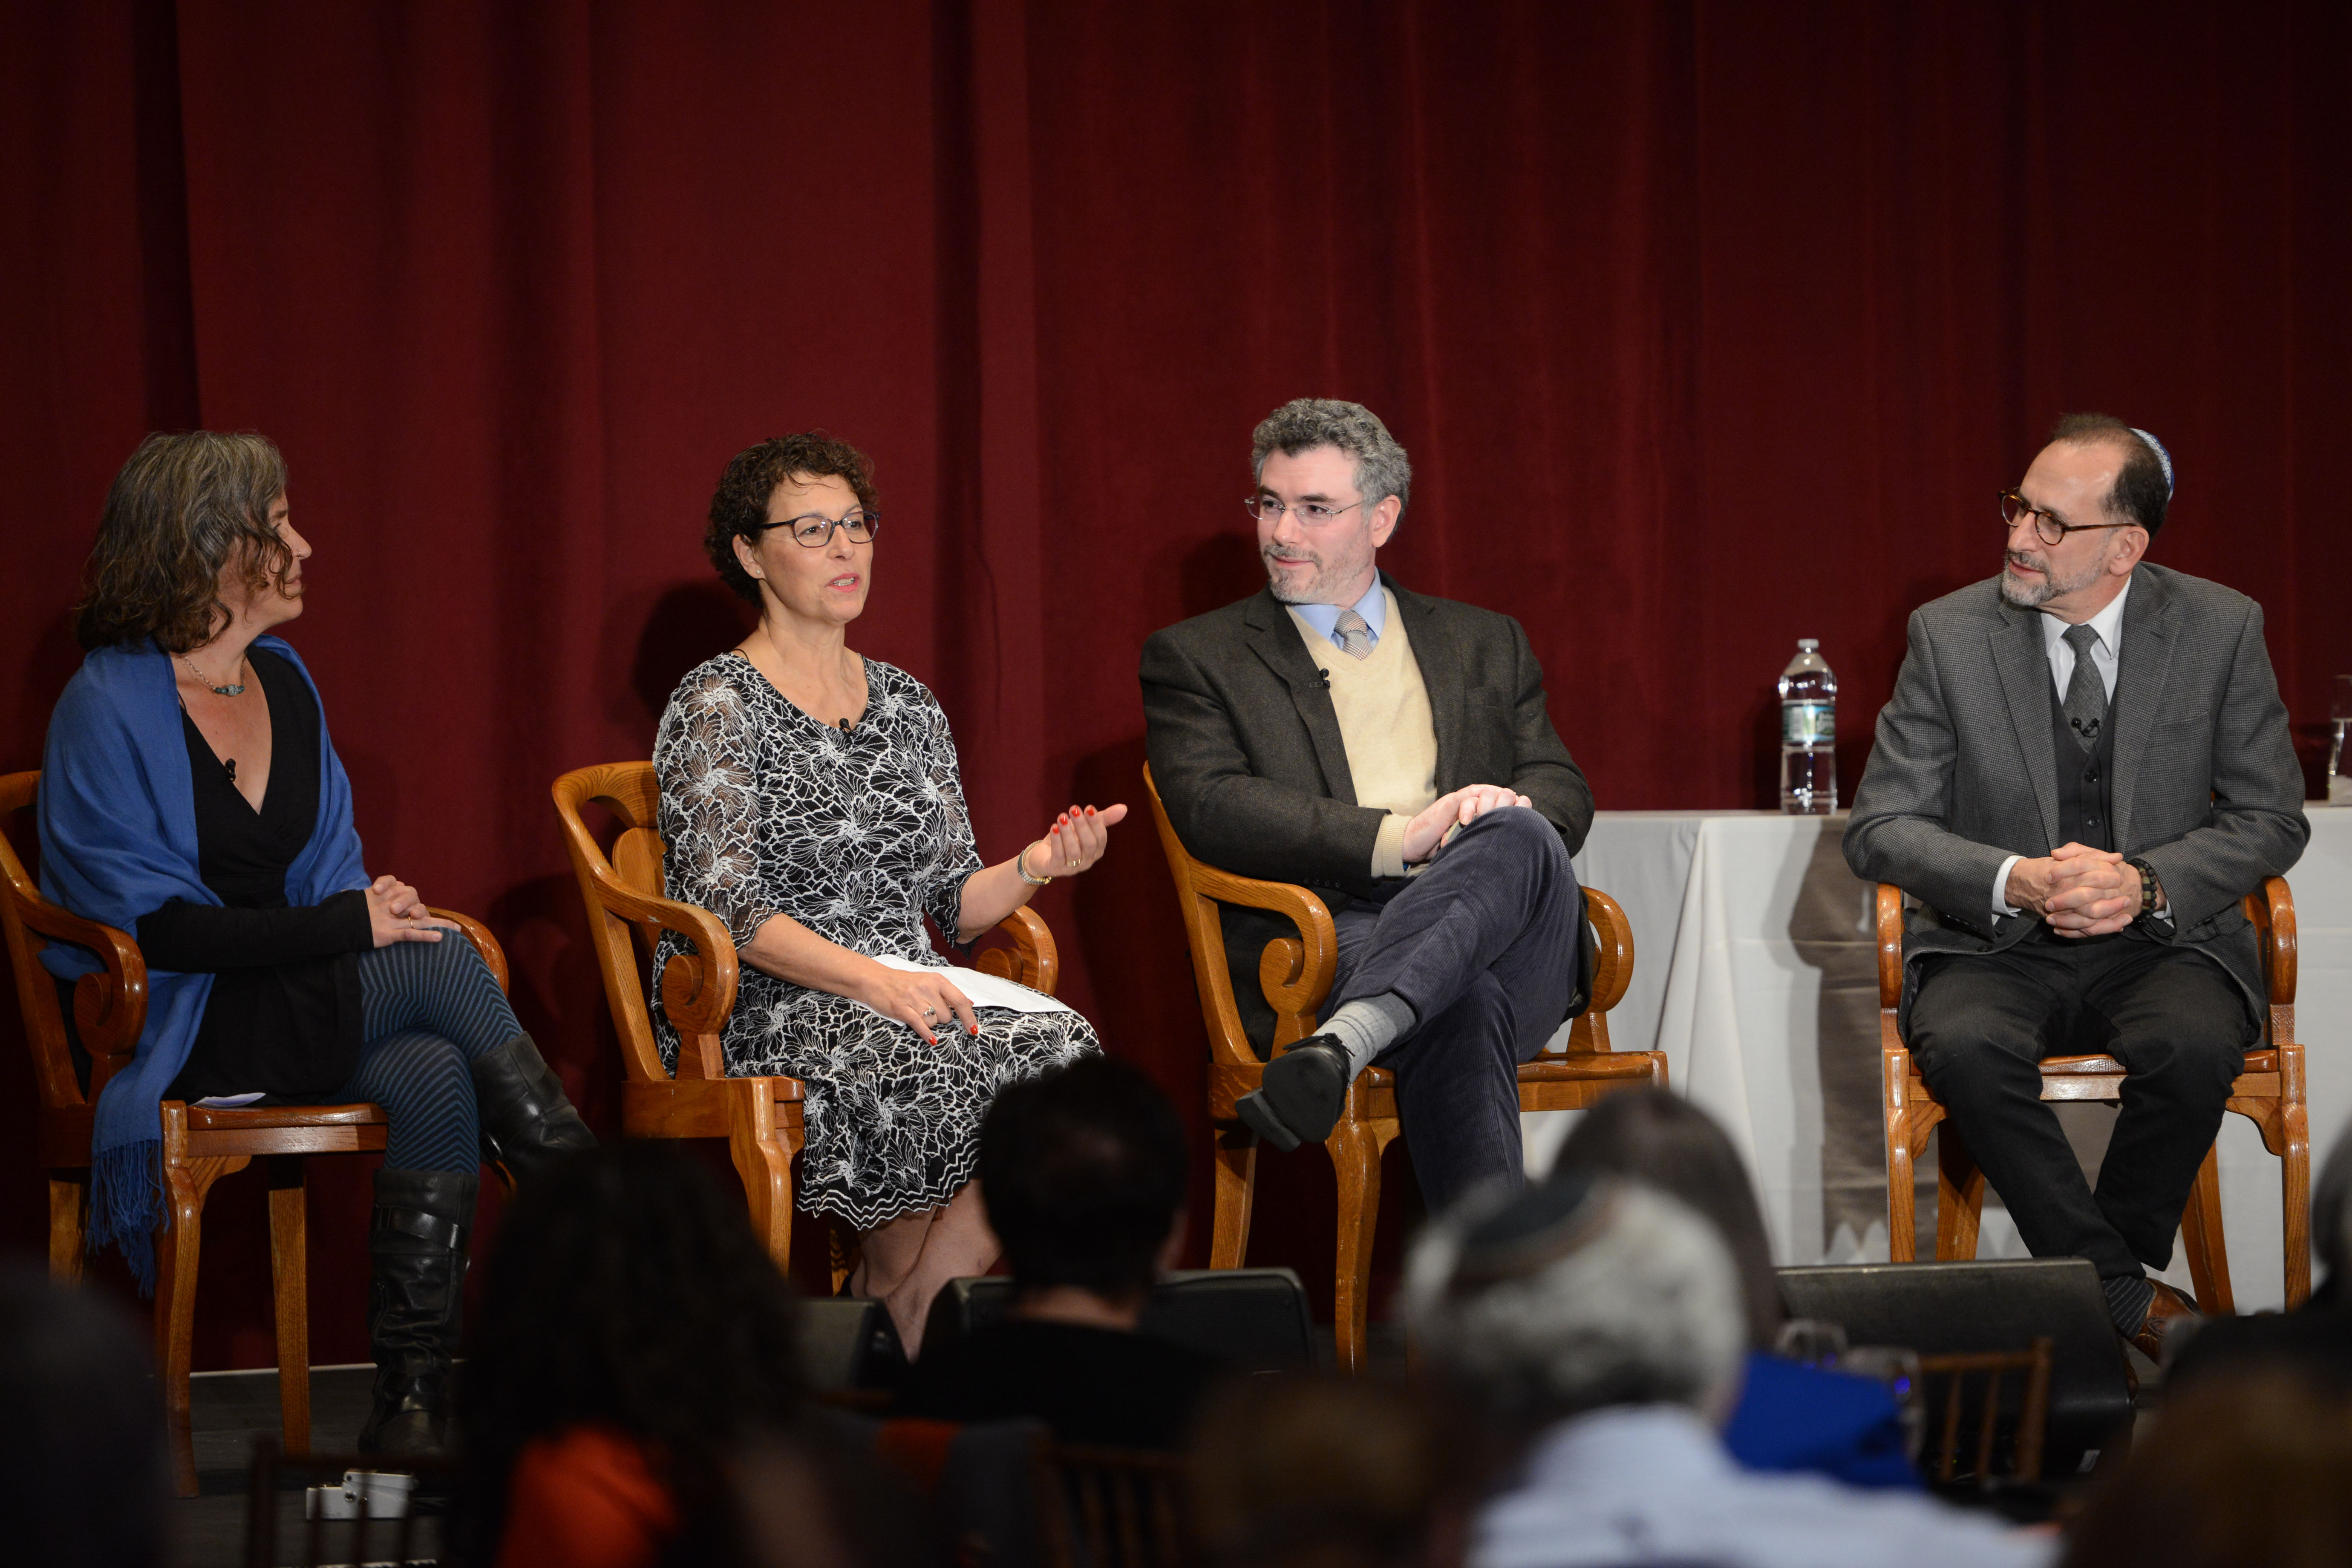 Educating Jewishly to Live Wisely panelists. From left: Sue Bojdak, 2017 Covenant Award Recipient Jane Shapiro, Rabbi Dr. Ariel Burger, and Dr. Bill Robinson.